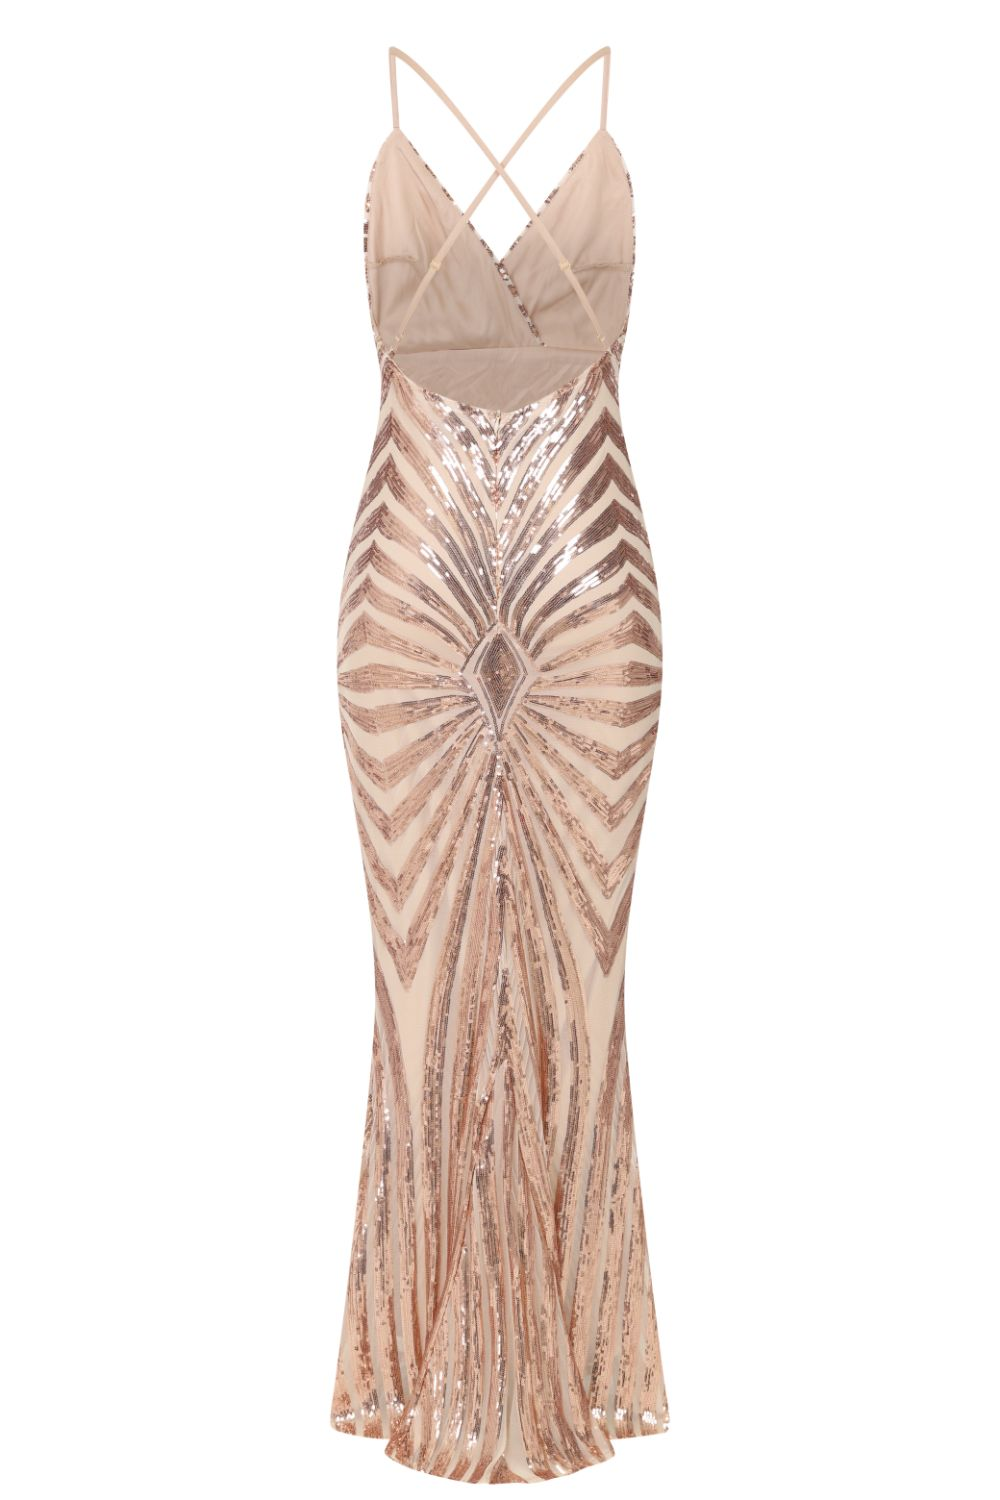 Timeless Rose Gold Plunge Sequin Hourglass Illusion Mermaid Maxi Dress